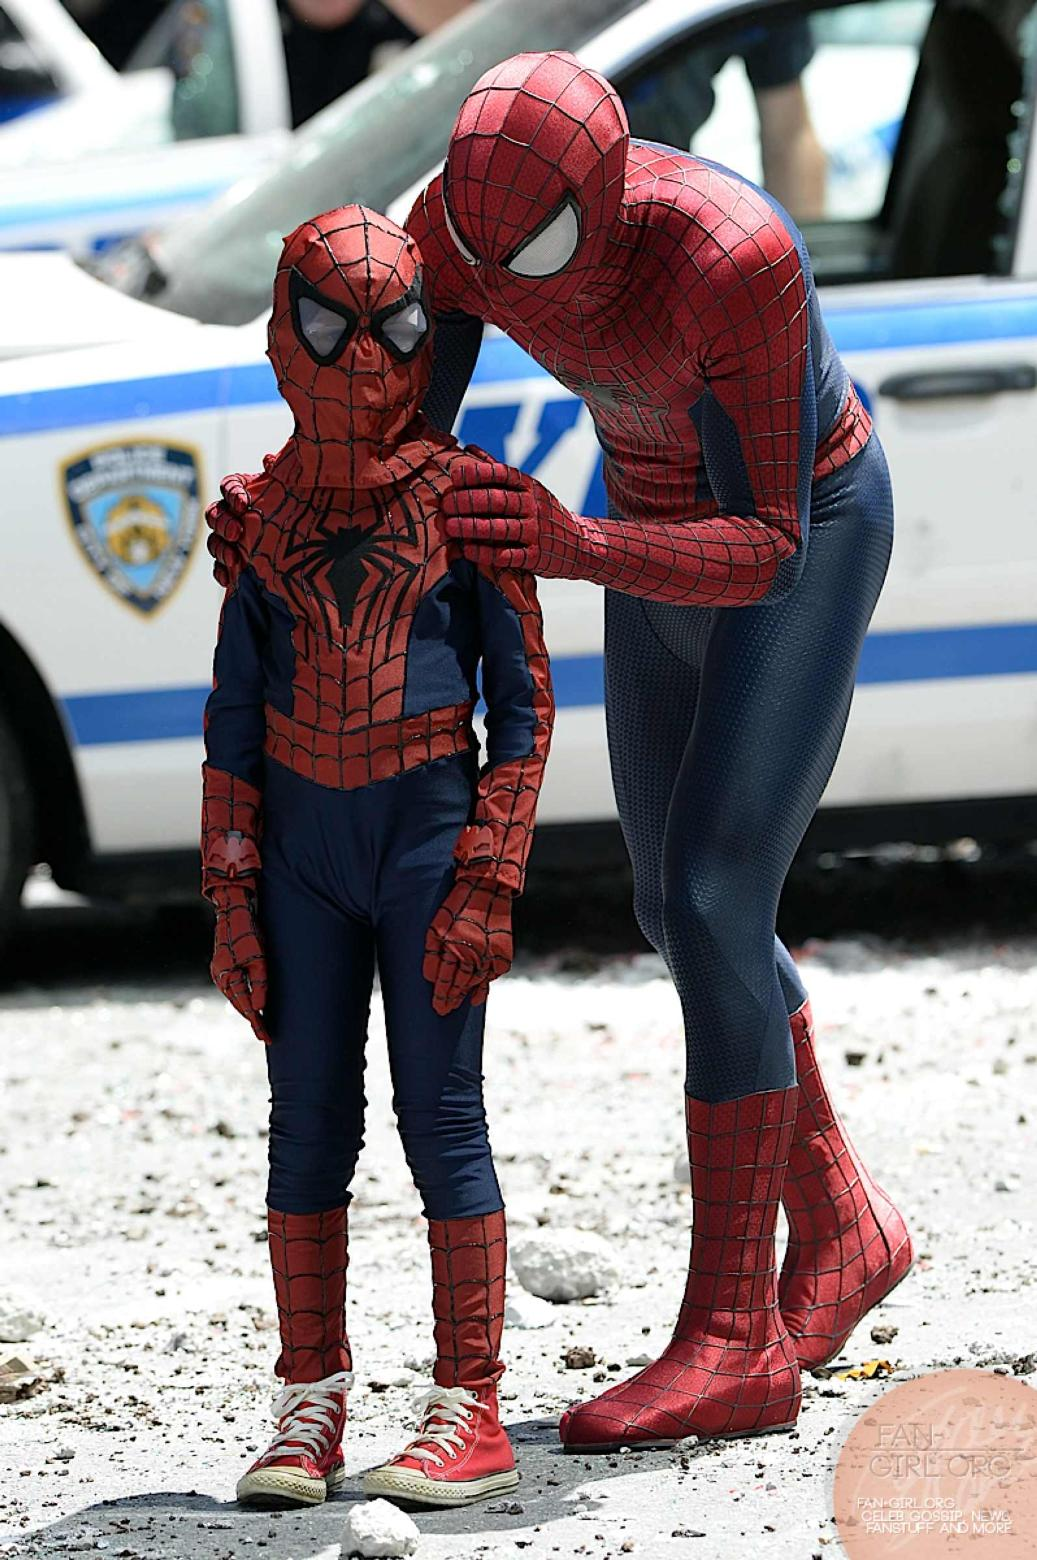 i'll teach you how to be spidey